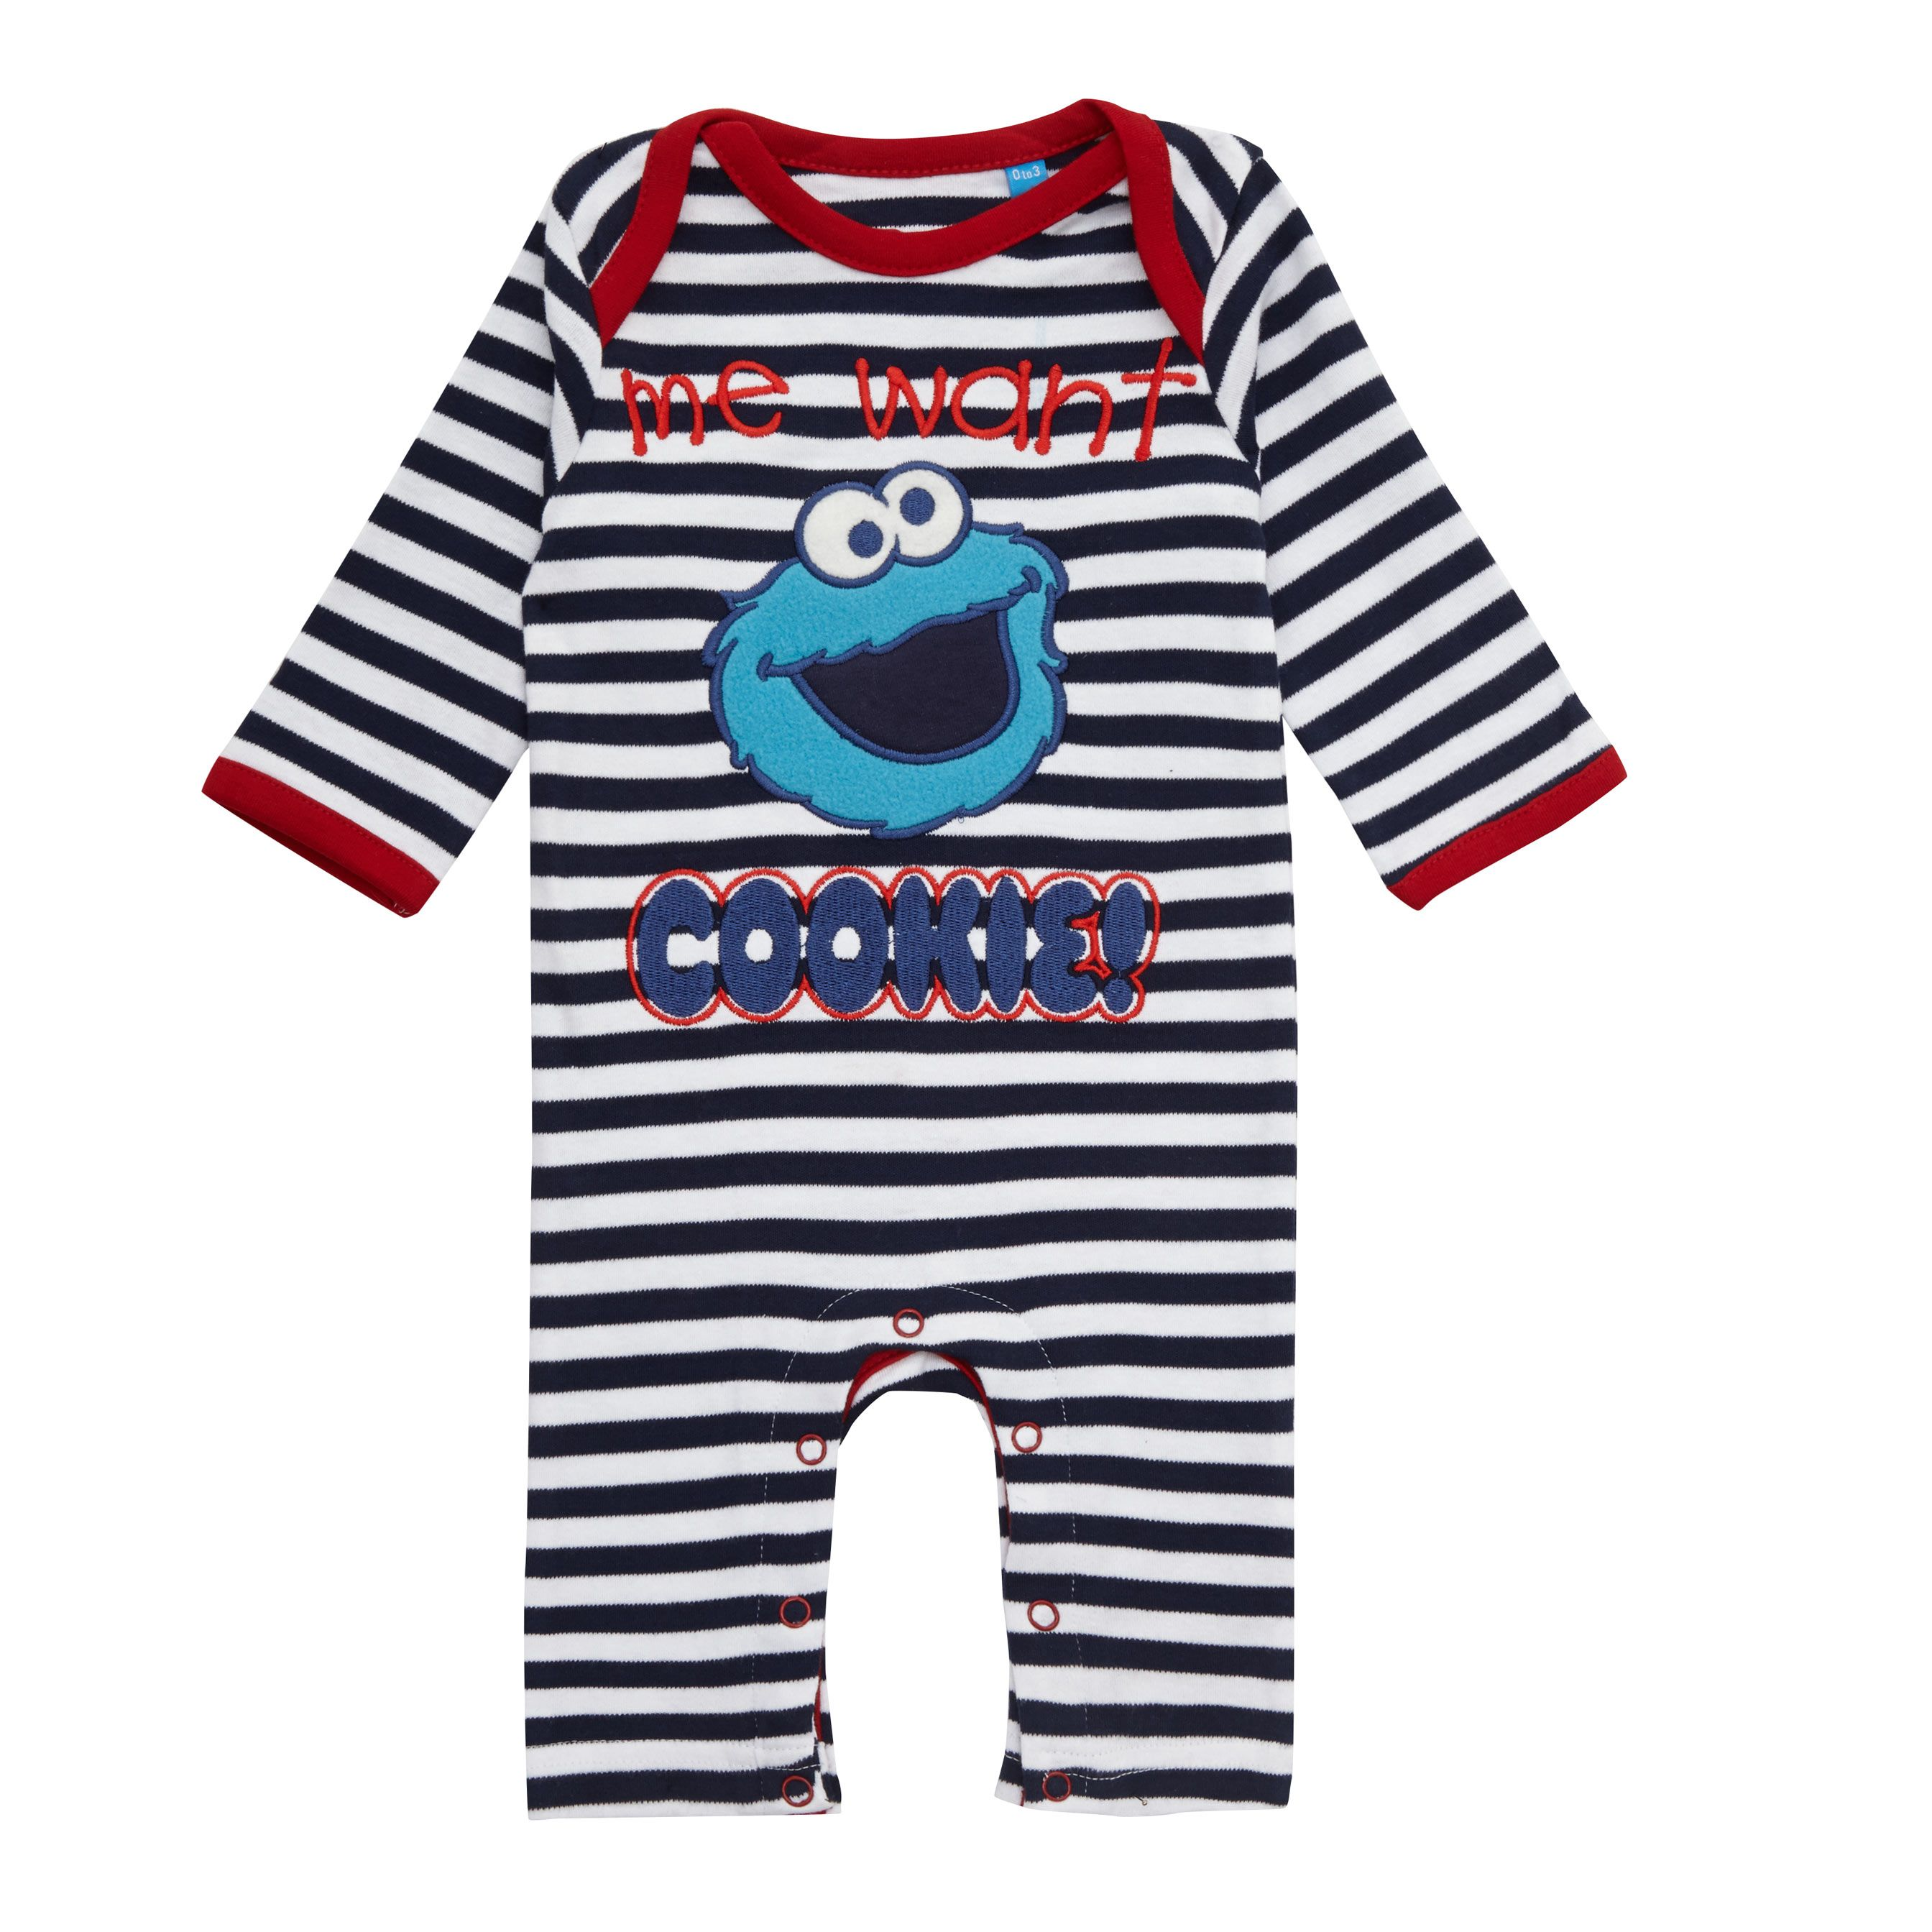 Blue Striped Cookie Monster Babygrow for £7 99 fabfind